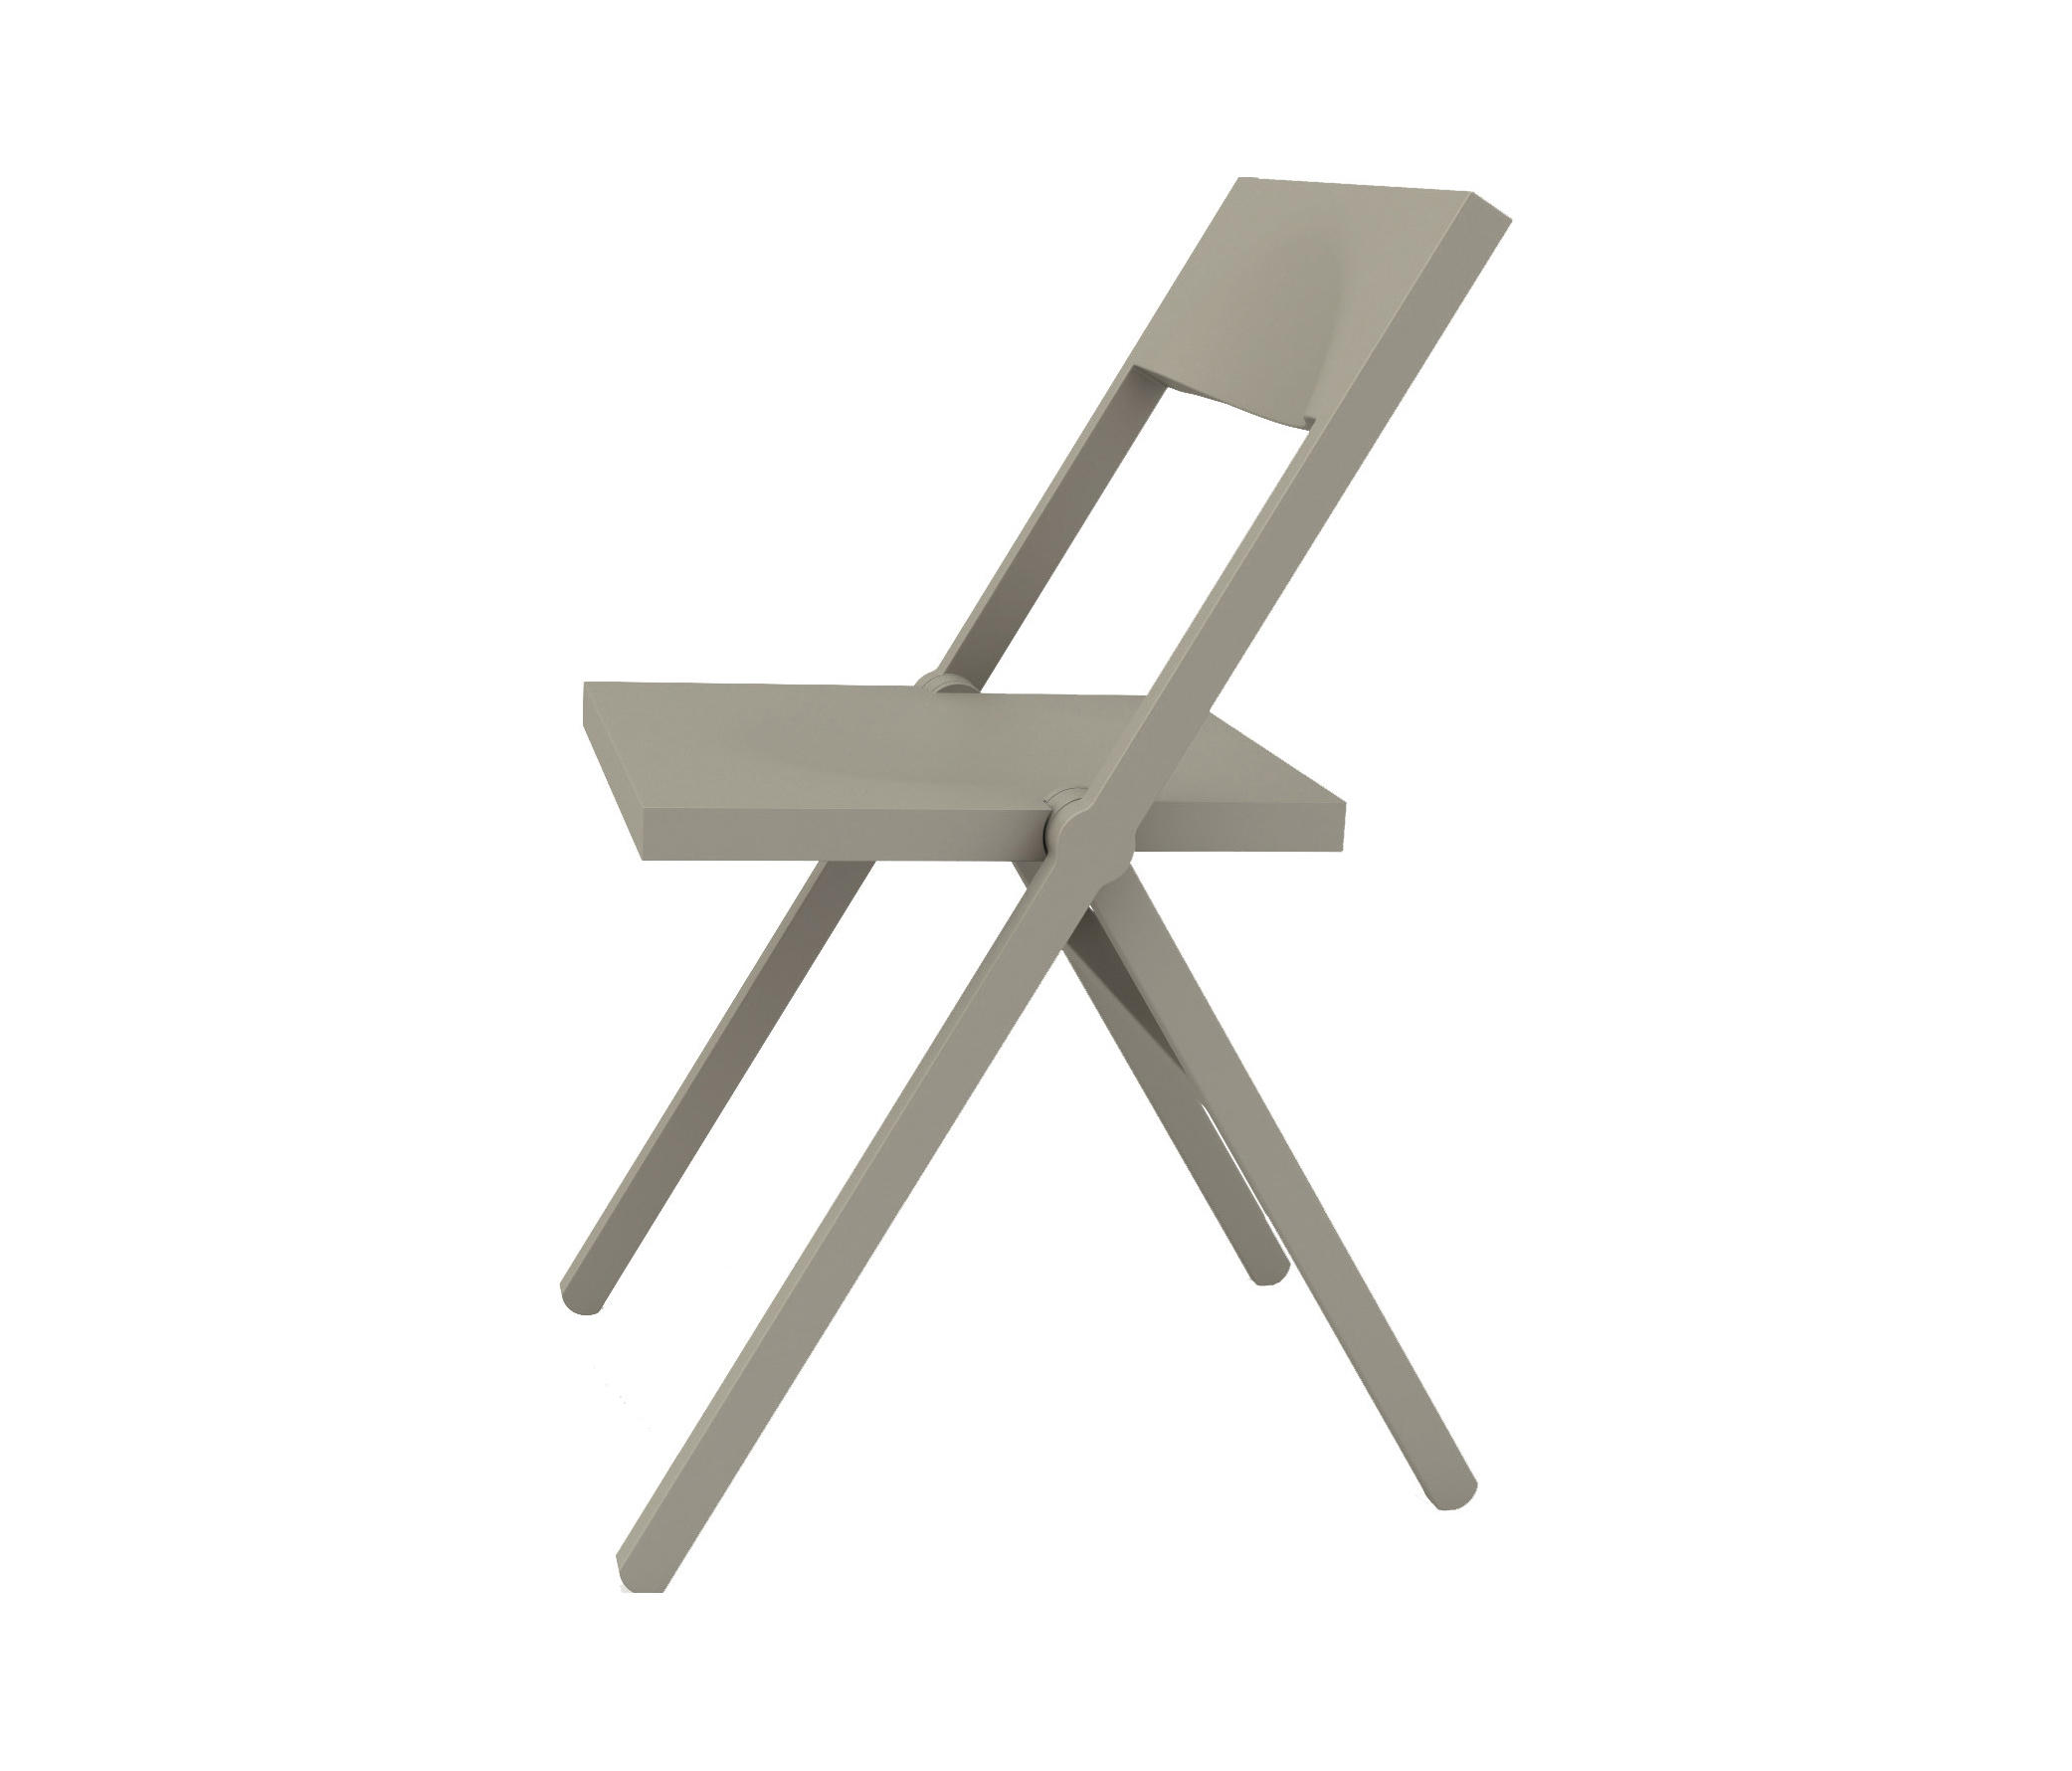 Piana Aspn7032 Chairs From Alessi Architonic